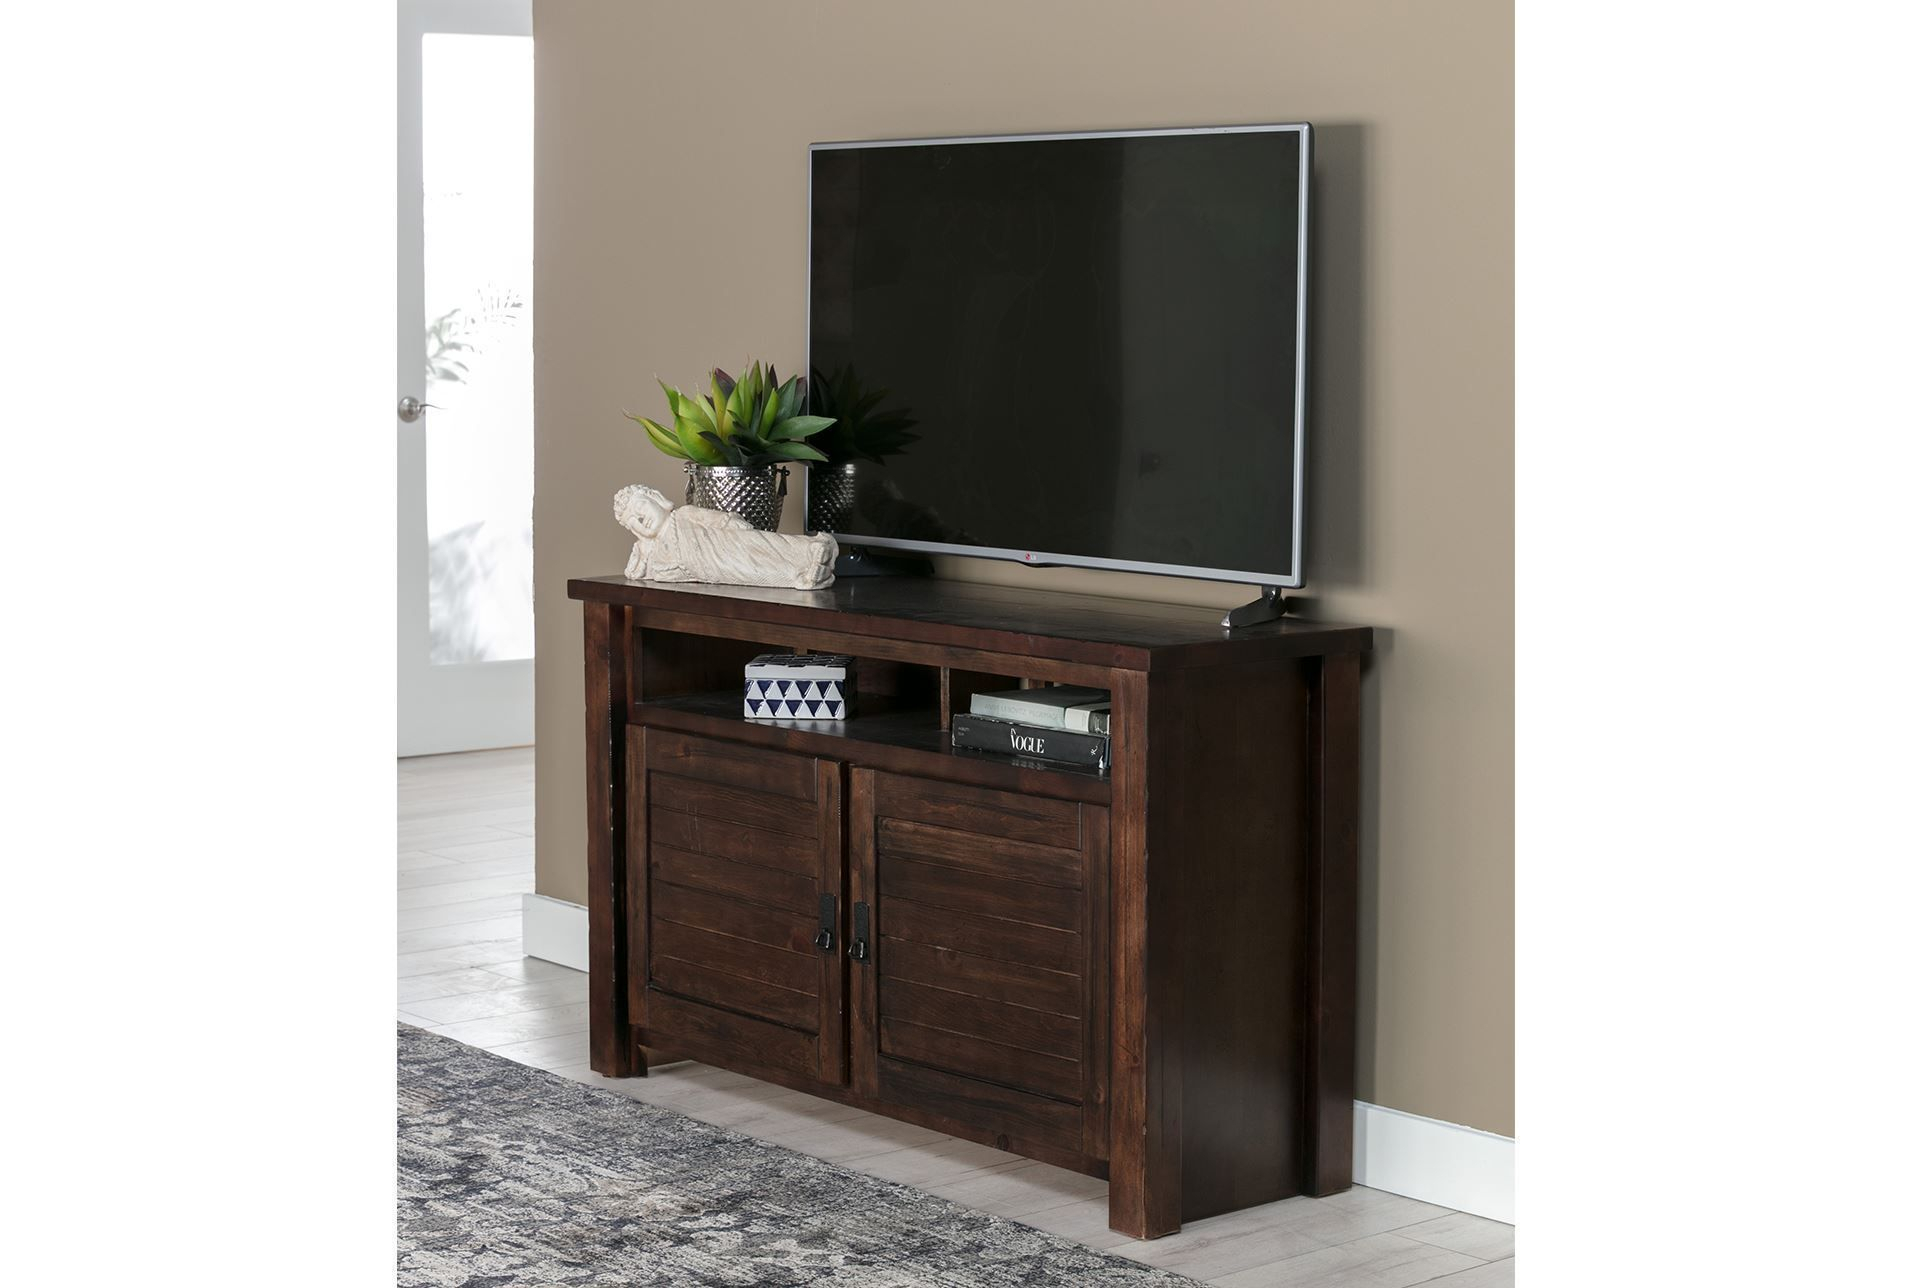 Canyon 54 Inch Tv Stand | Toren In Samo – Living Room | Pinterest In Canyon 54 Inch Tv Stands (View 1 of 30)